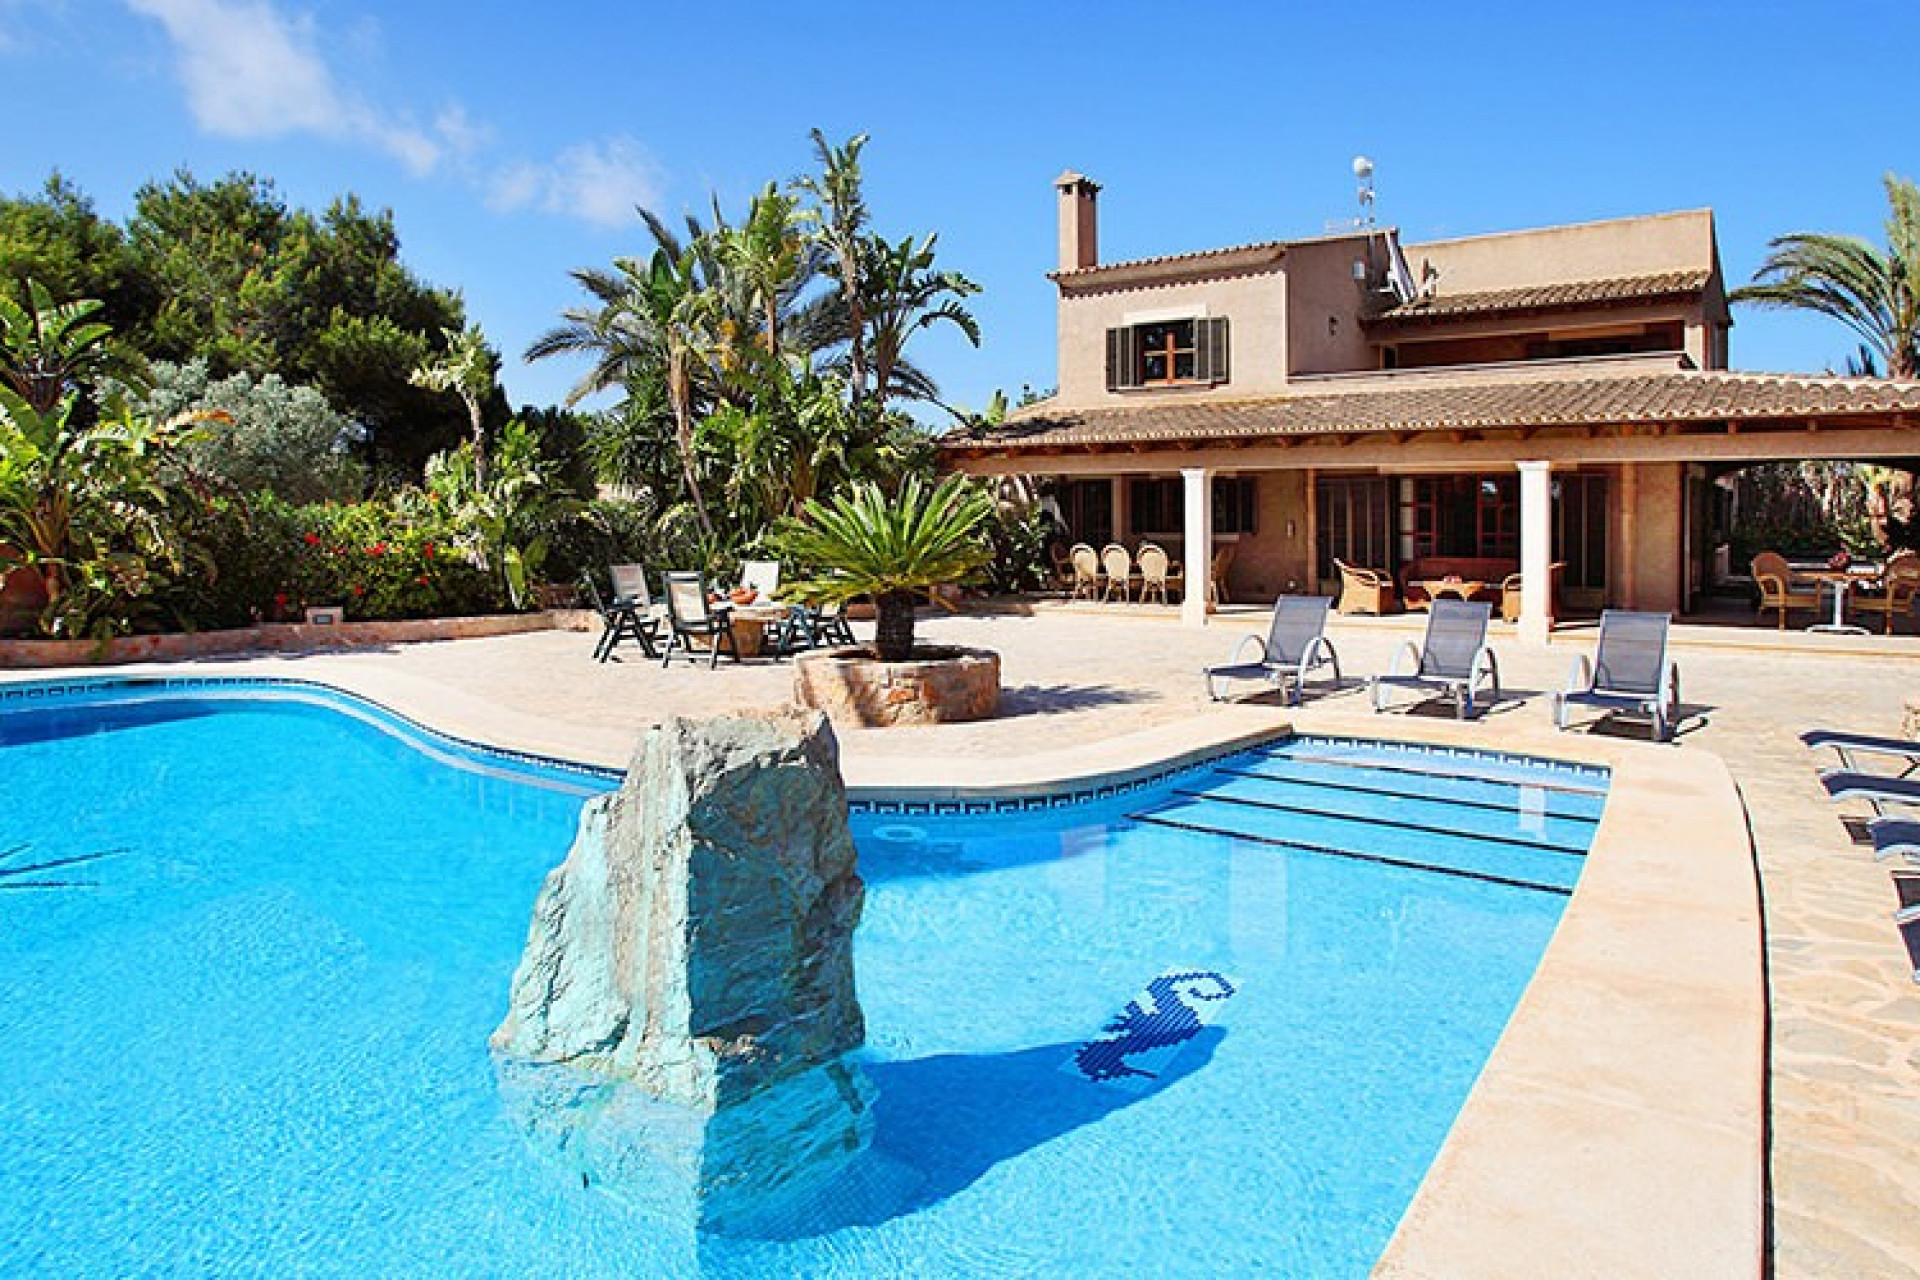 Casa De Campo is a 6 Bedroom Villa in Cala D'or Mallorca Ideal for Large Groups with Private Pool